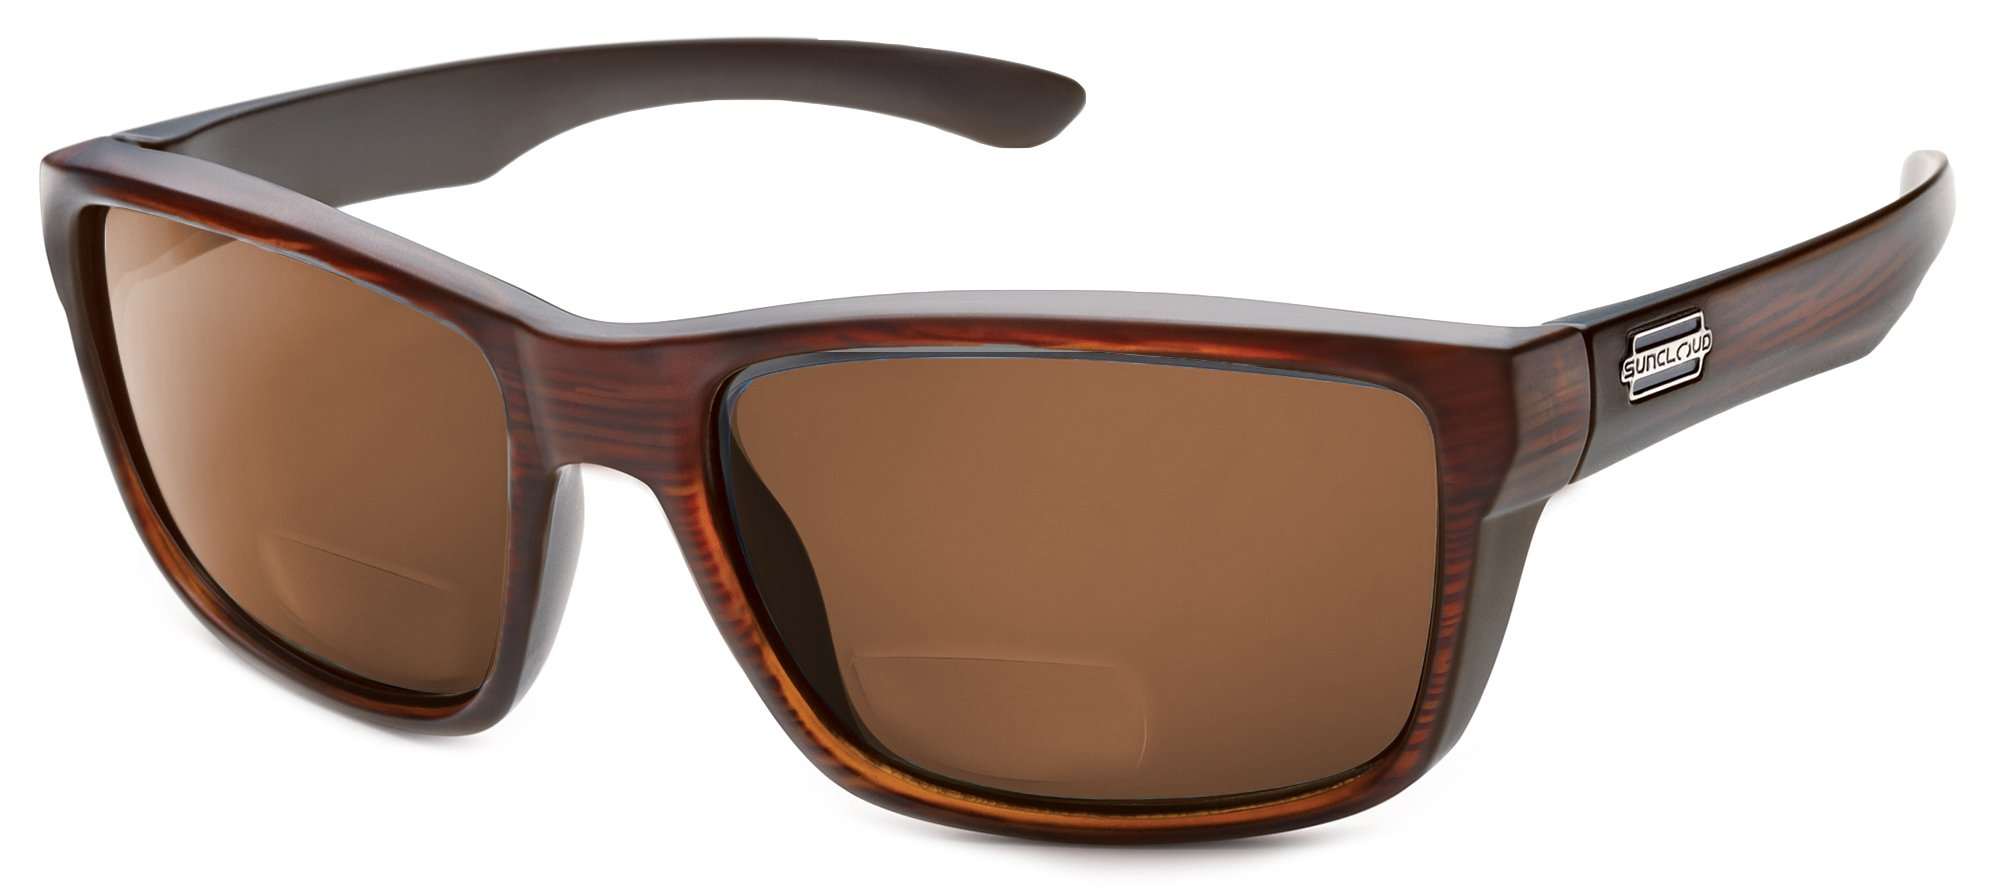 Suncloud Mayor Polarized Bi-Focal Reading Sunglasses in Burnished Brown w/Brown Lens +2.50 by Suncloud